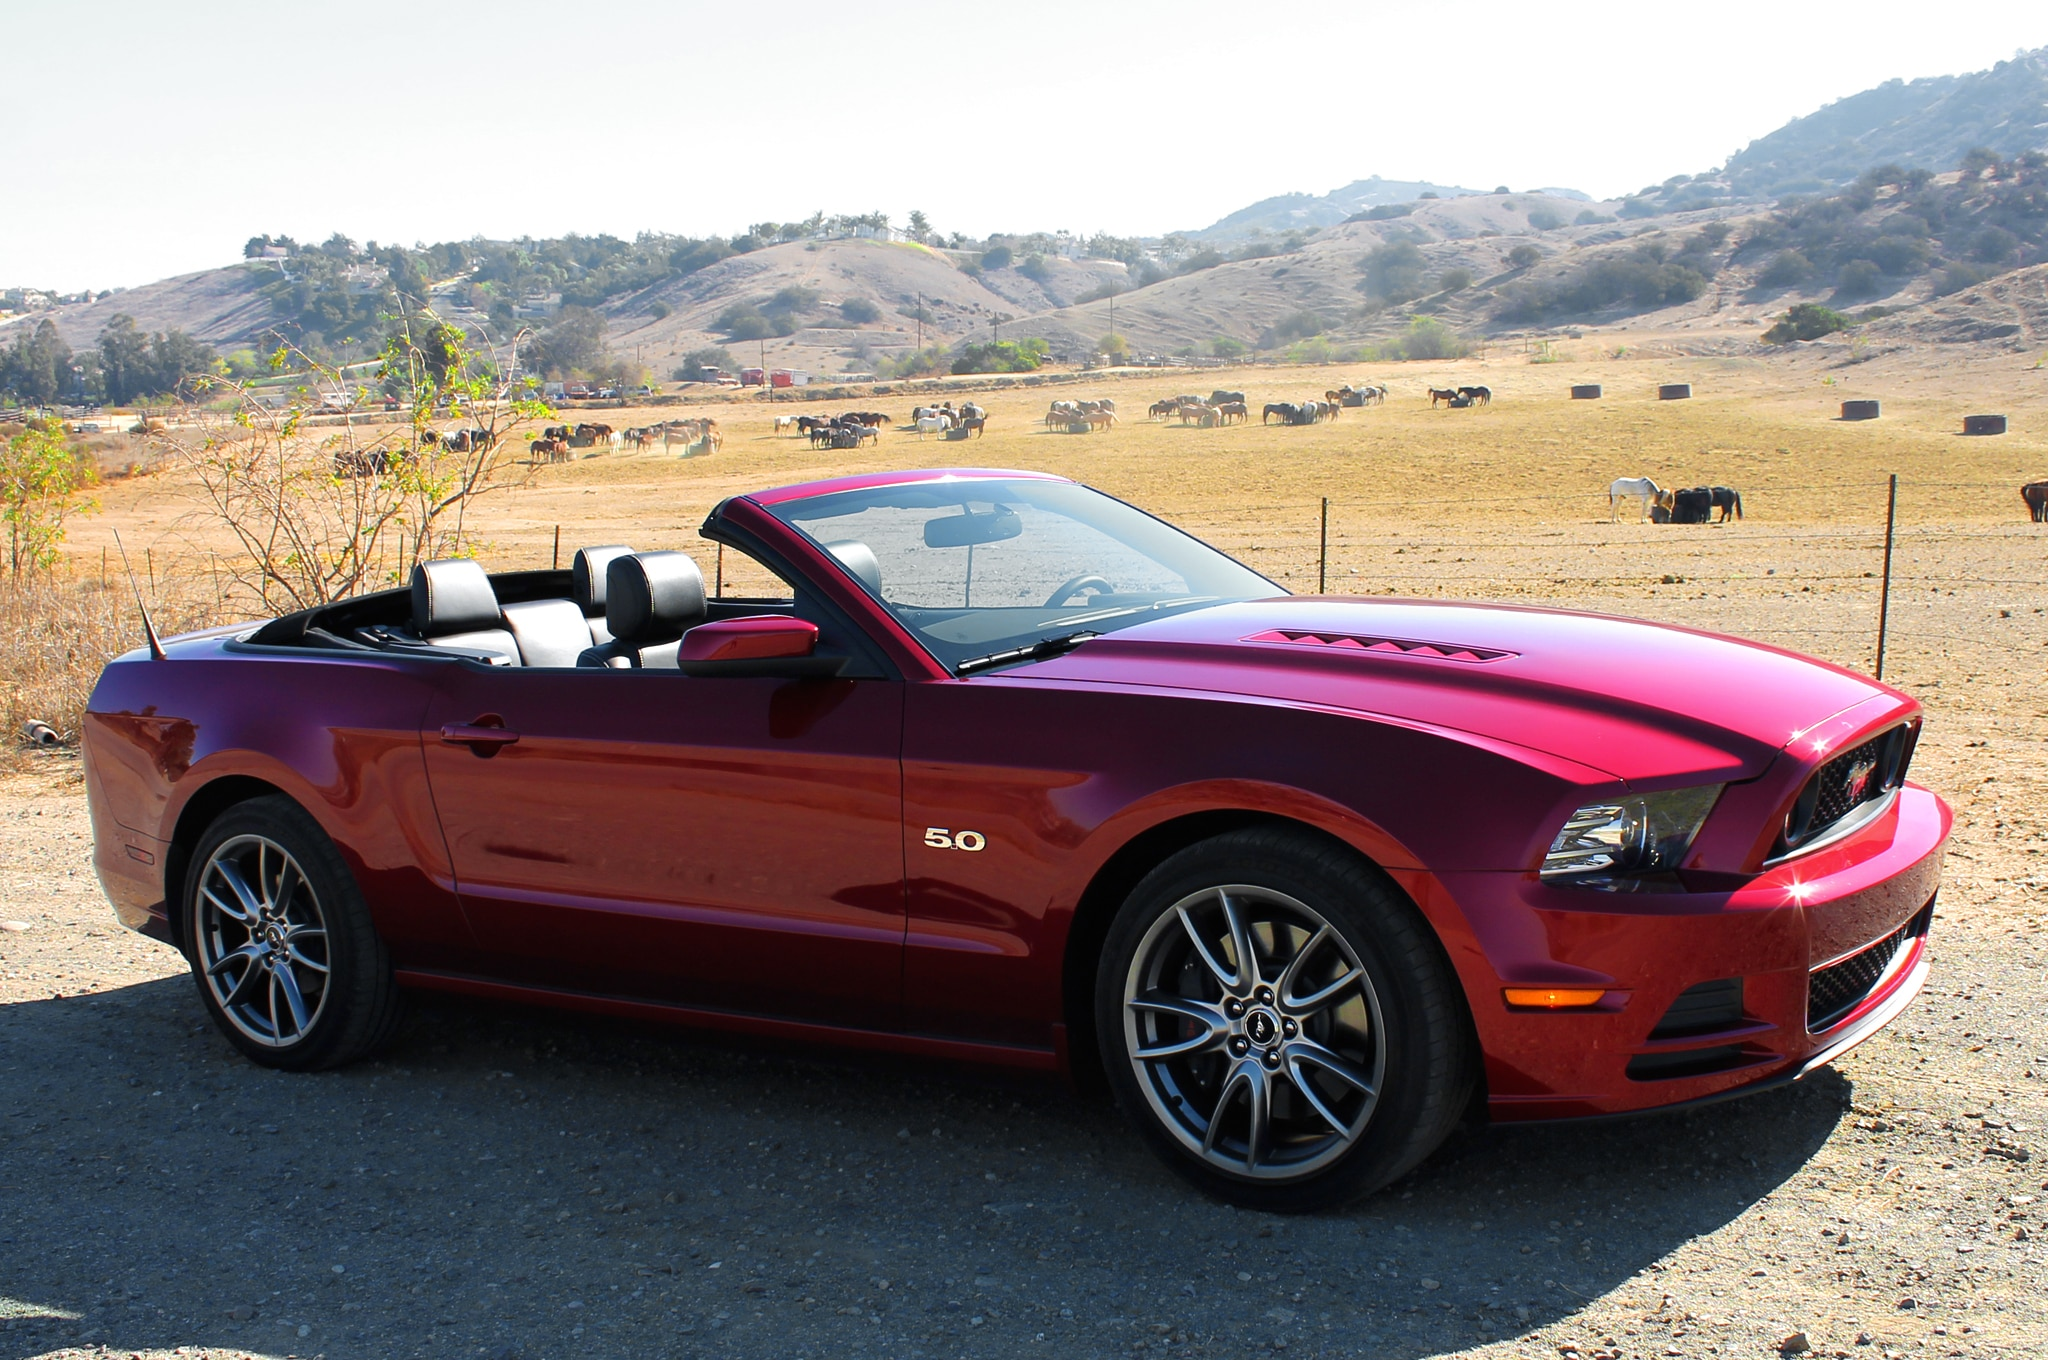 ford mustang convertible 2014 primera prueba autos terra motortrend. Black Bedroom Furniture Sets. Home Design Ideas